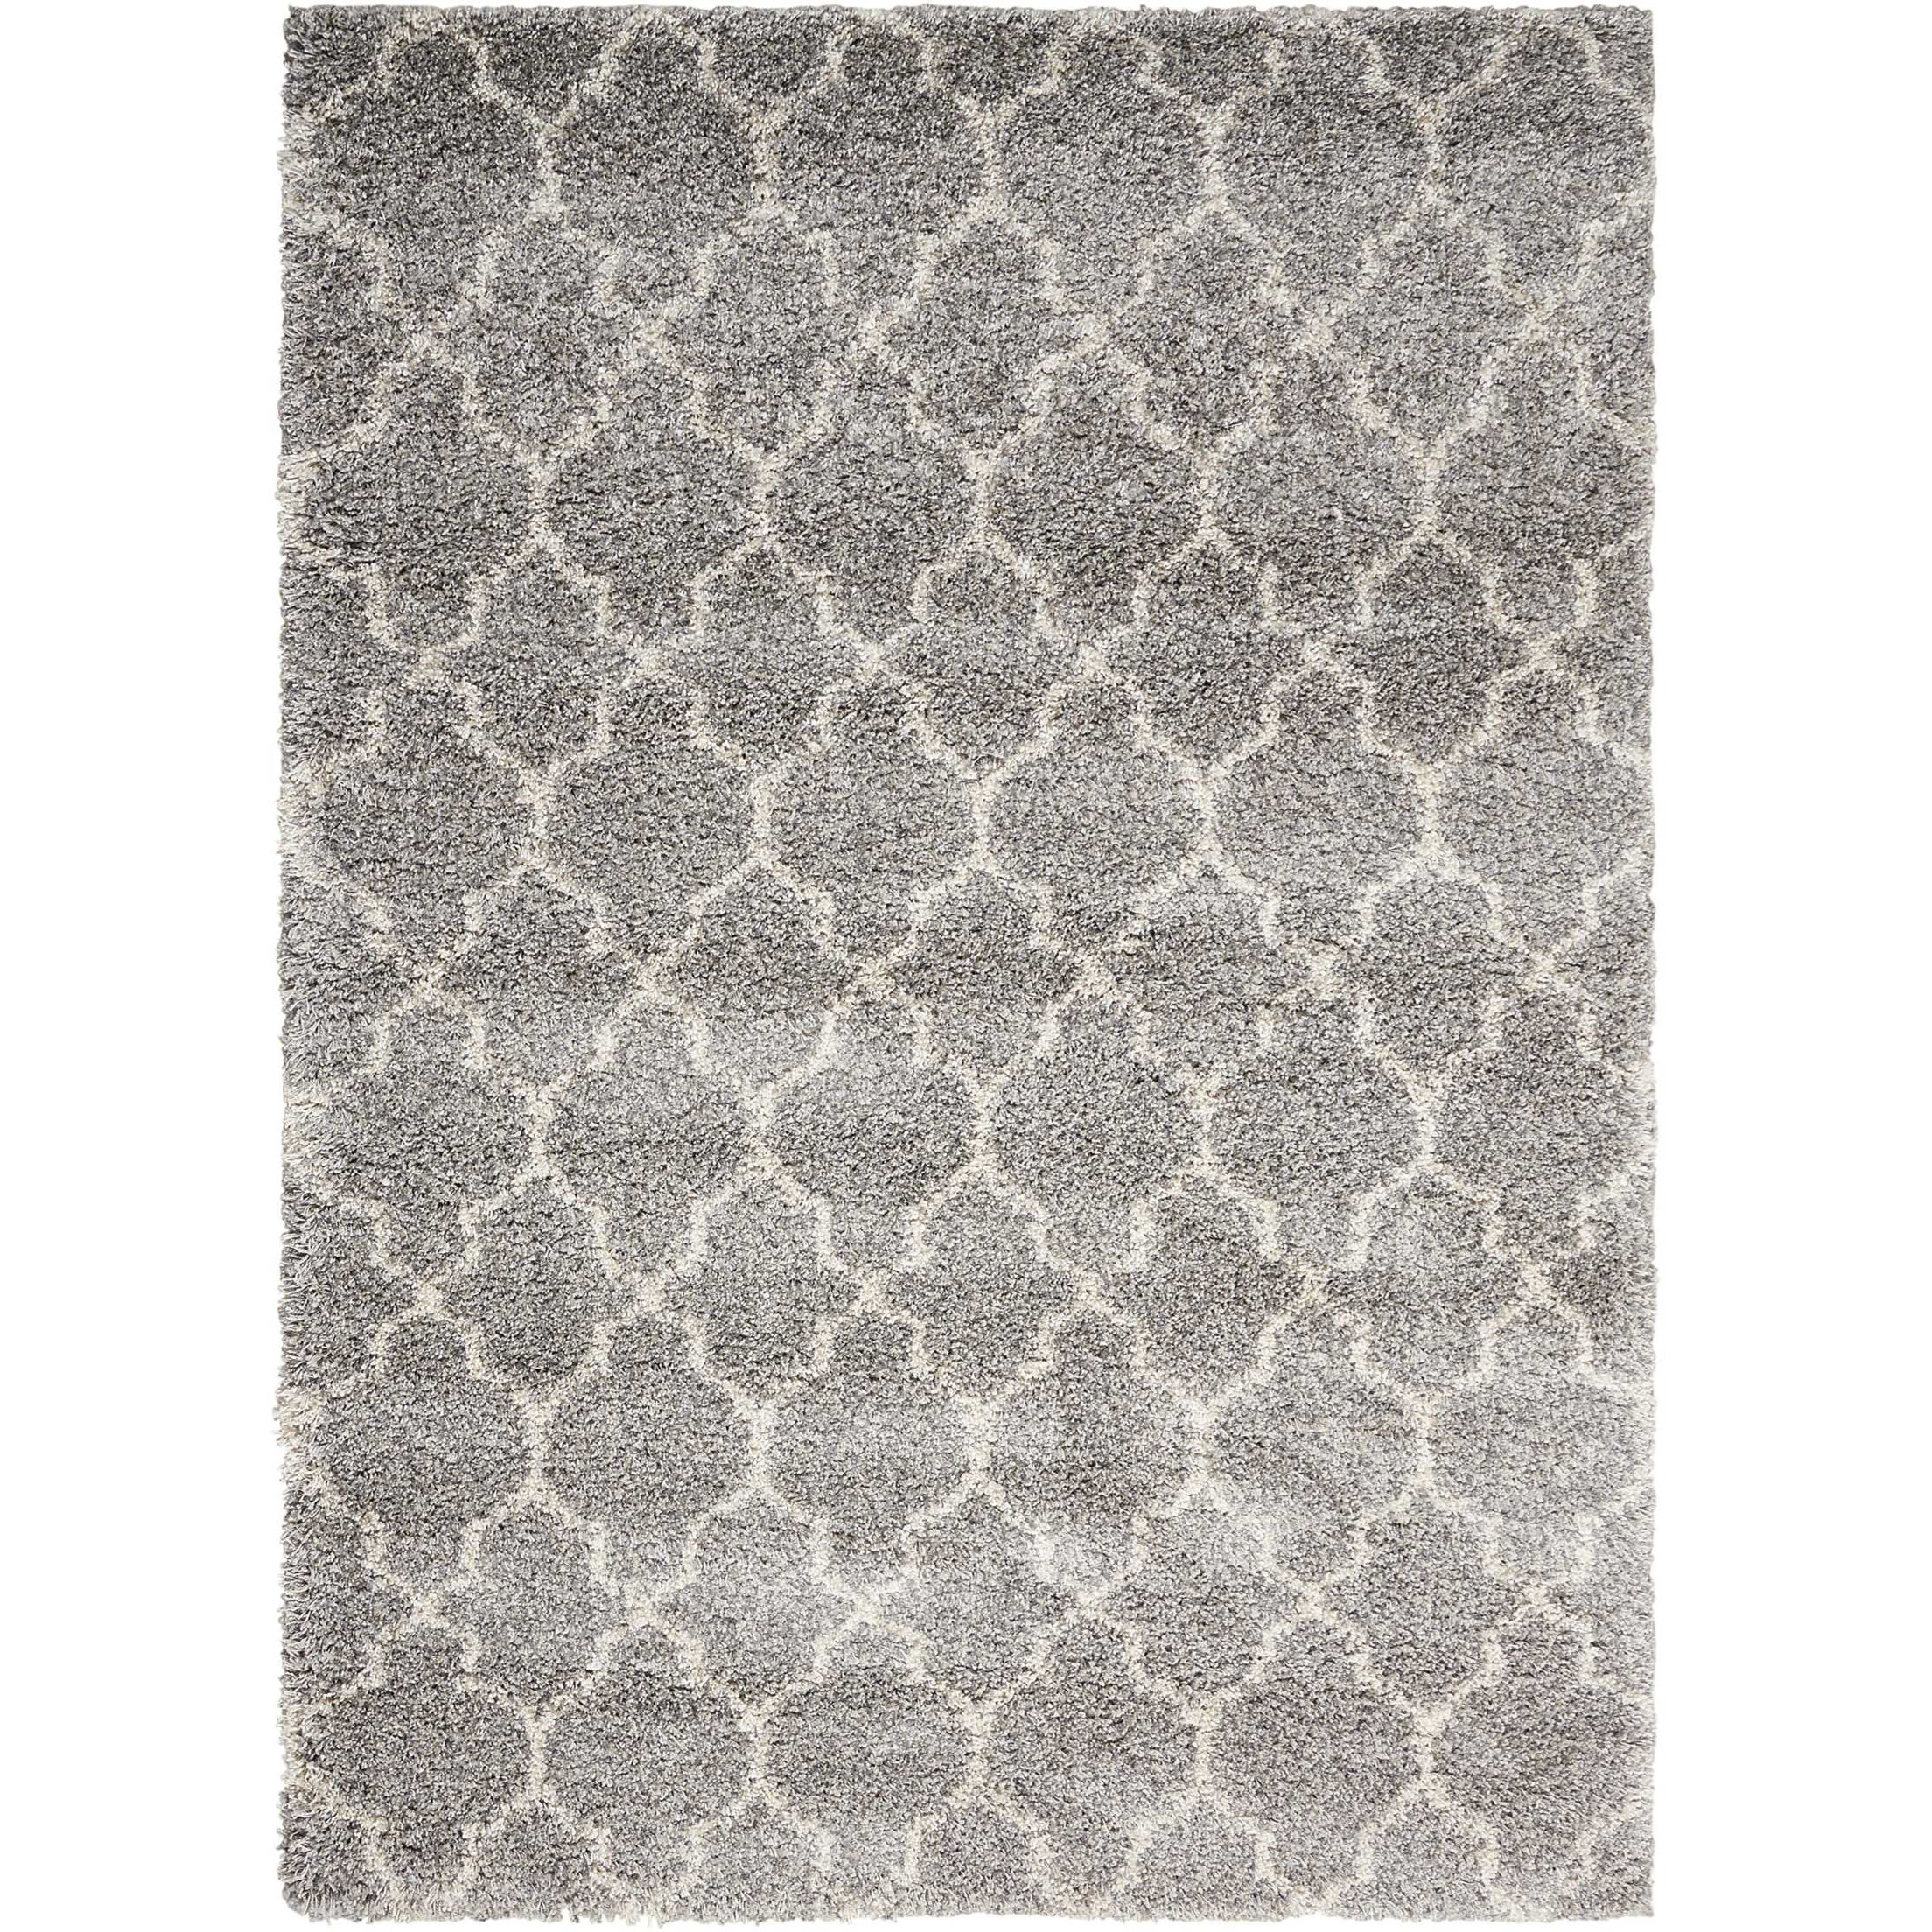 """Amore 3'11"""" x 5'11"""" Ash Rectangle Rug by Nourison at Home Collections Furniture"""